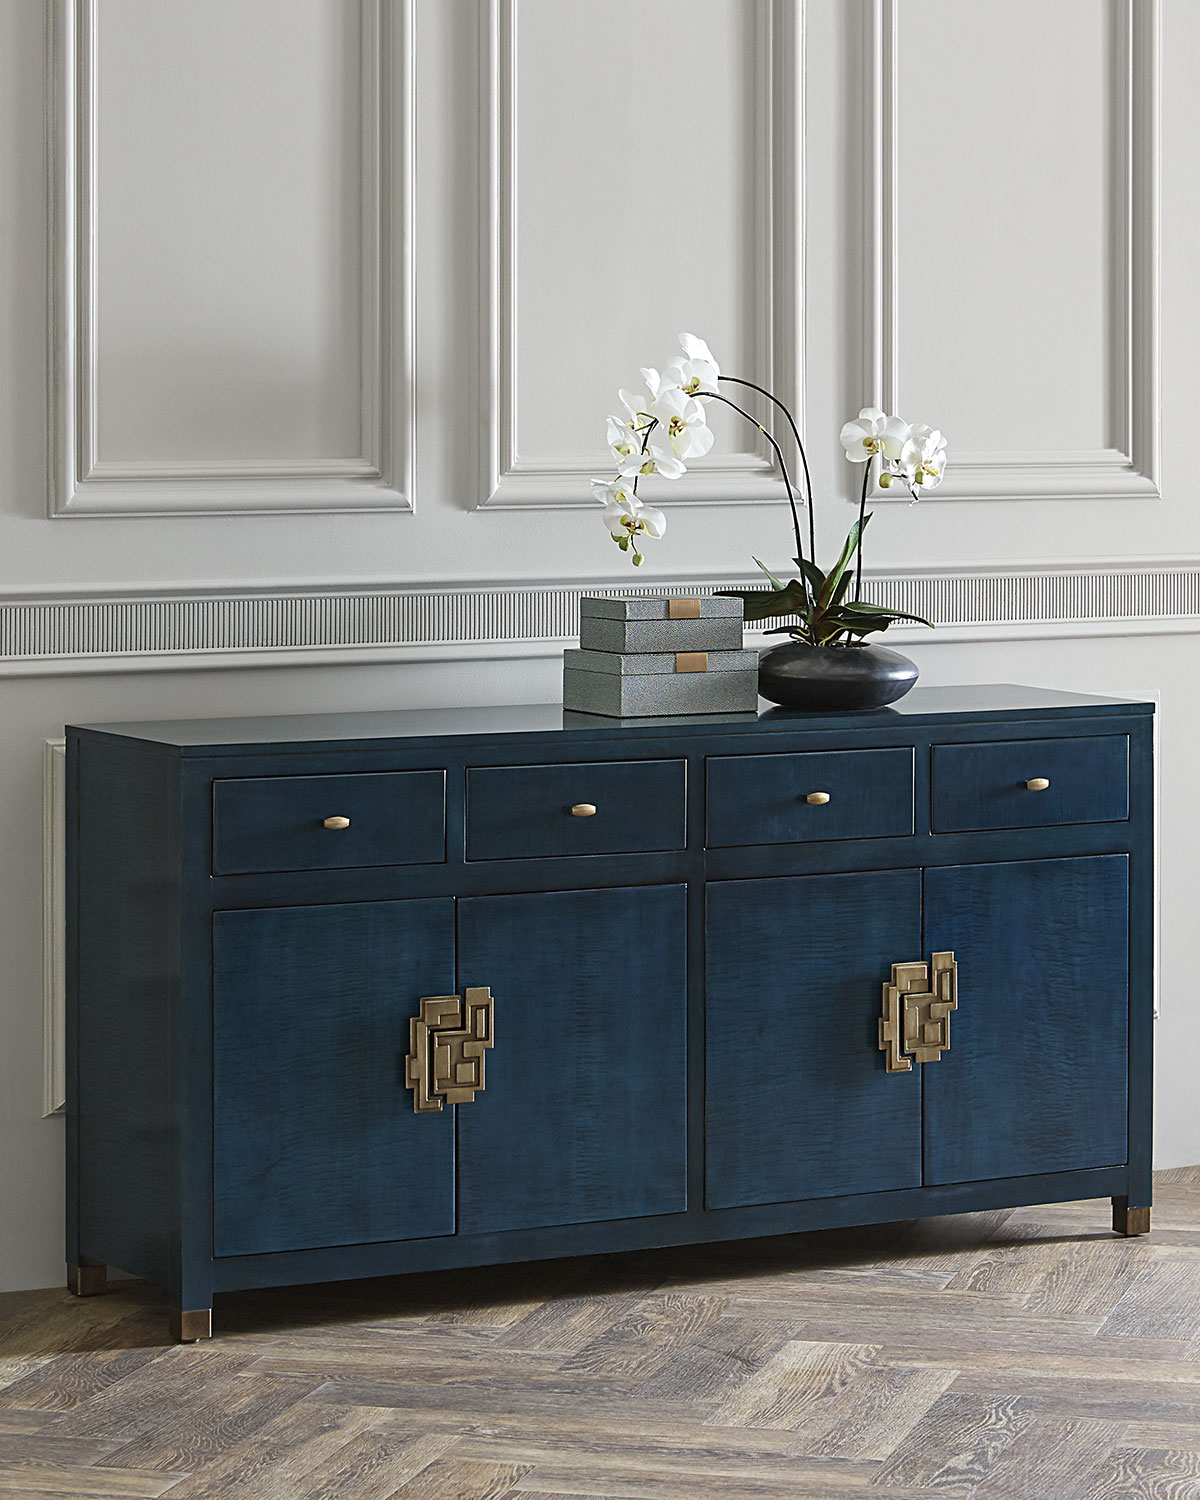 Cynthia Rowley For Hooker Furniture Curiosity Credenza Neiman Marcus